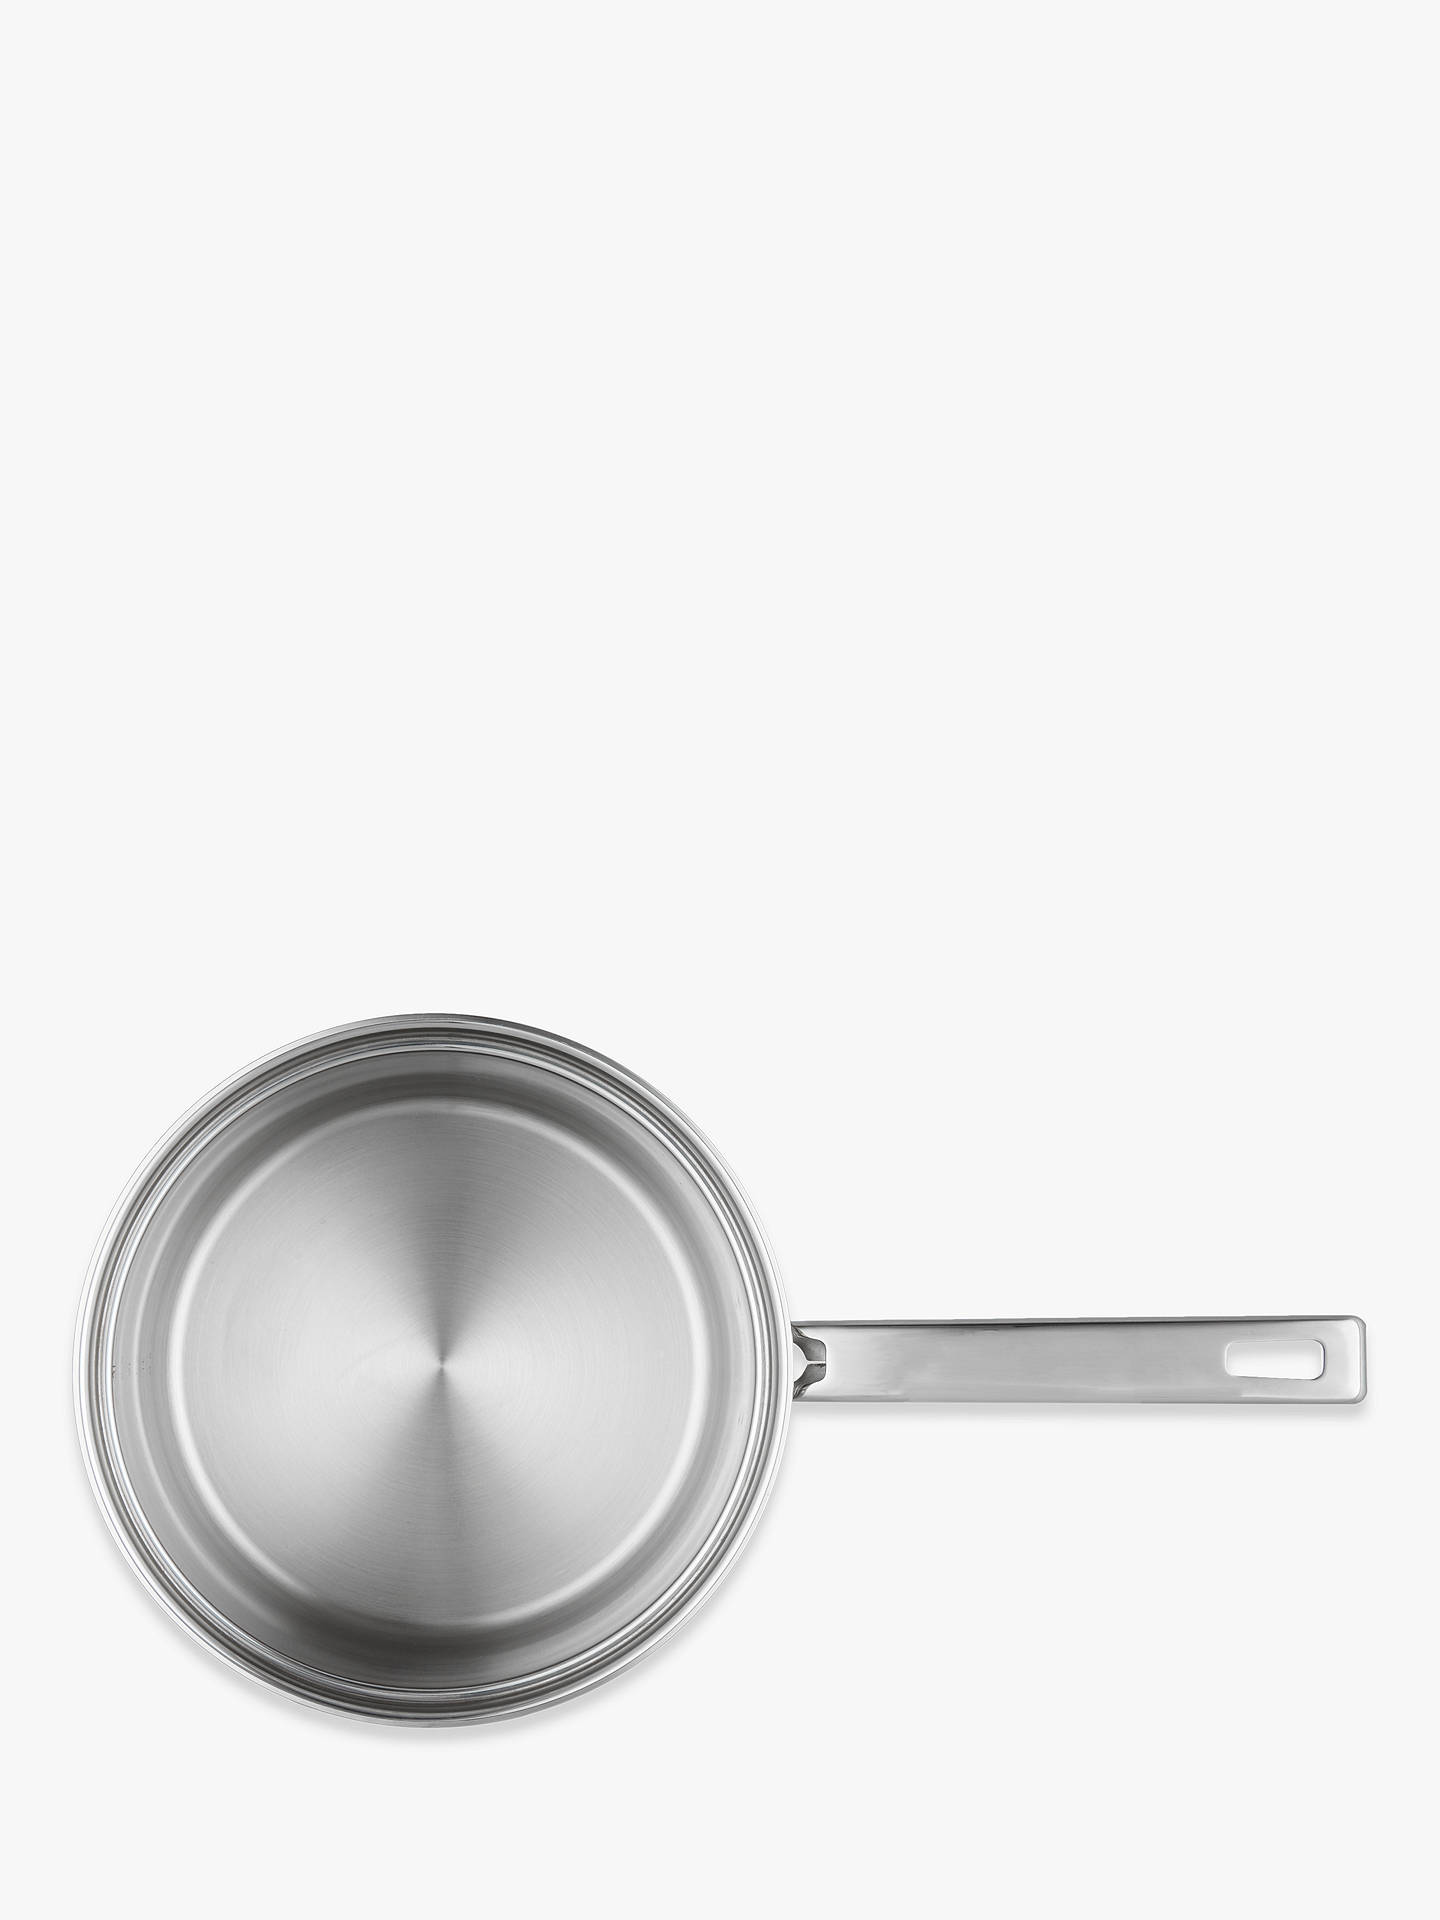 BuyJohn Lewis & Partners Classic Saucepan Set, 3 Piece Online at johnlewis.com